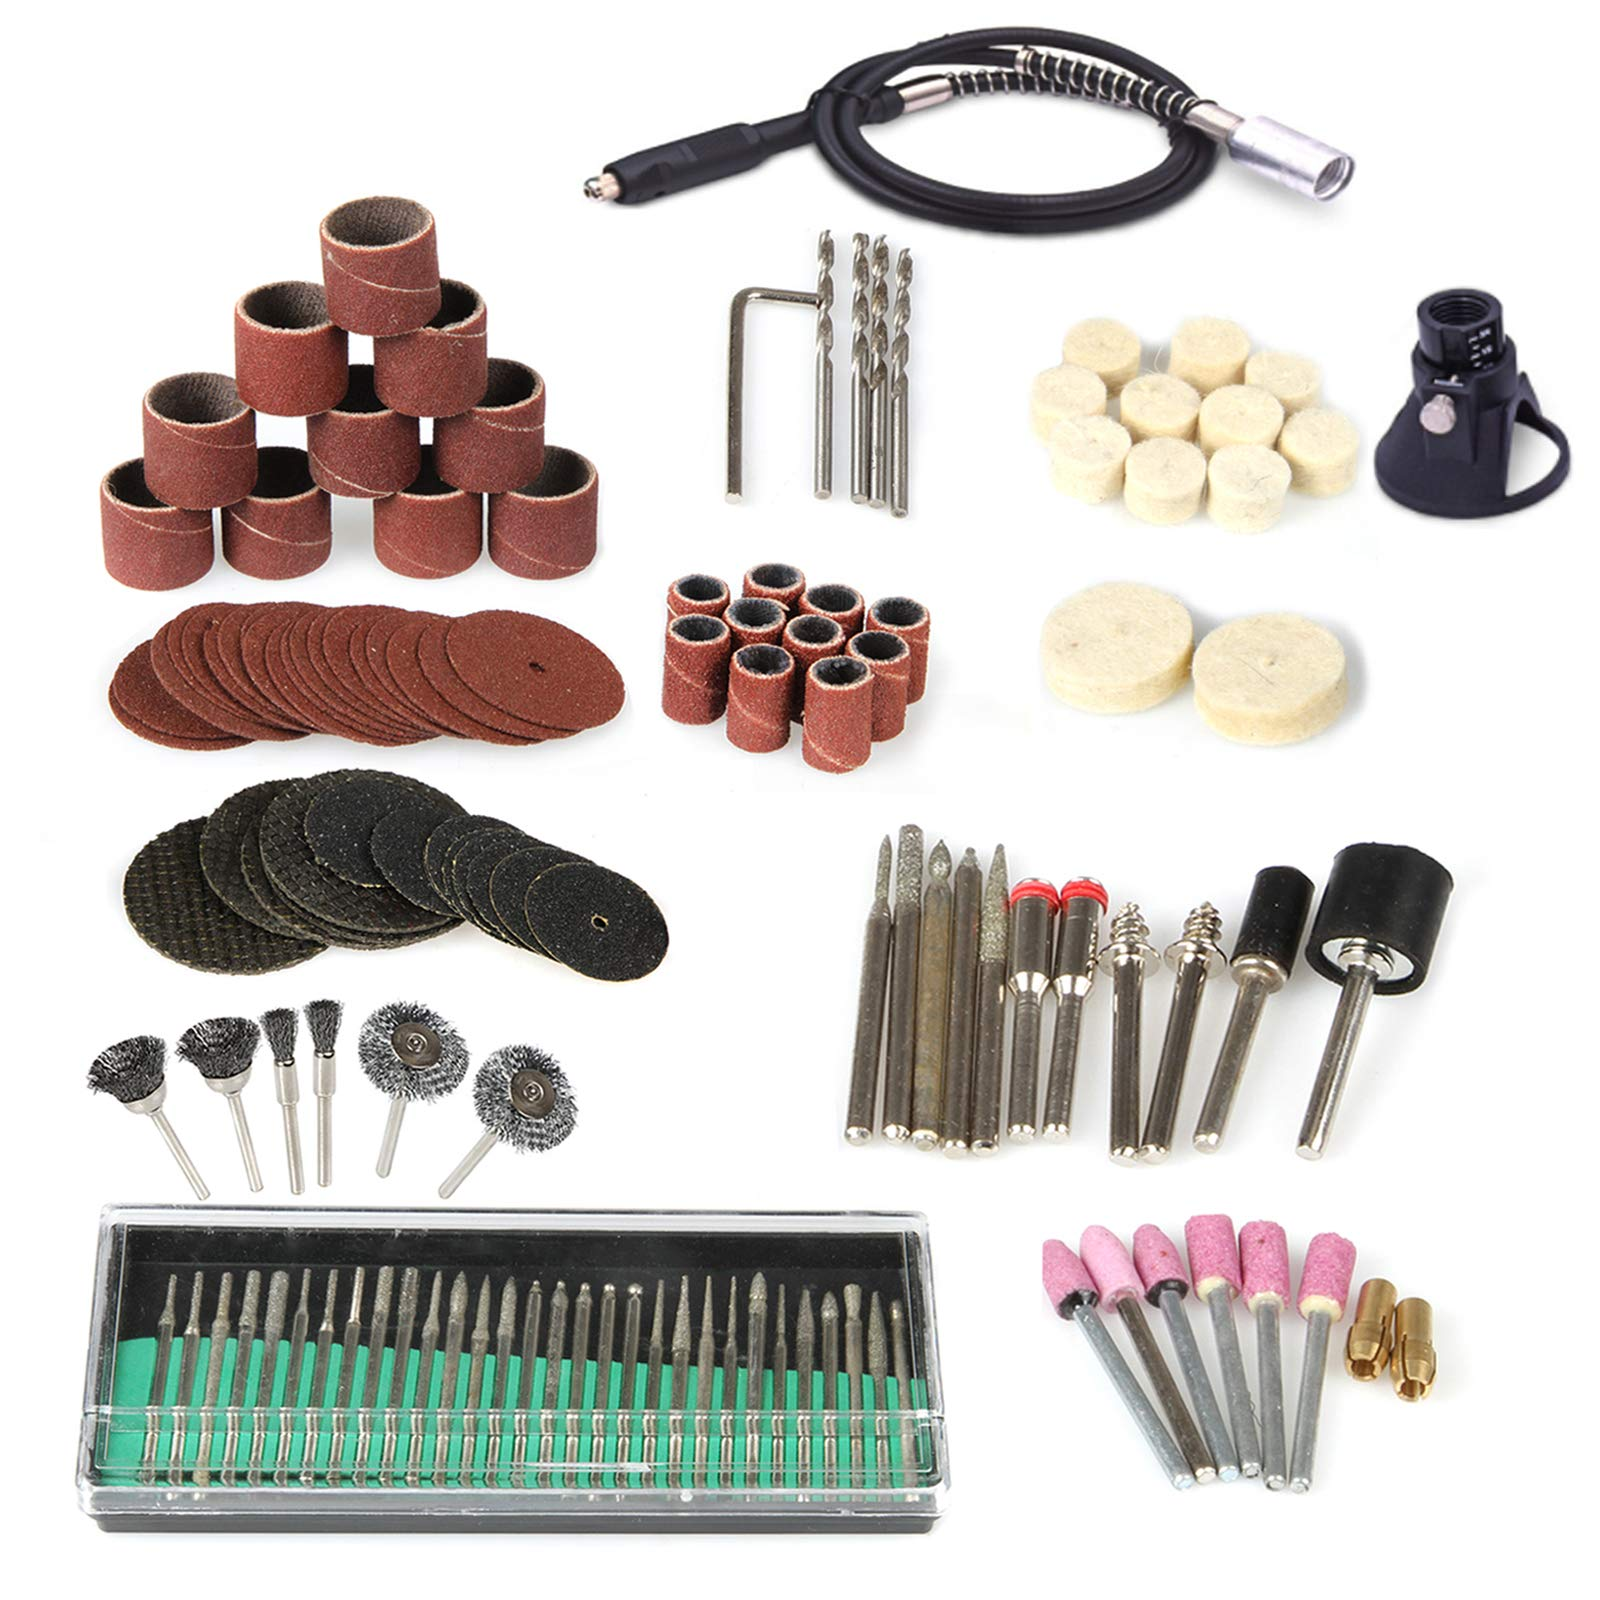 ANMAS 140X Electric Grinder Set Sanding Tool Replacement Accessories With Flexible Shaft Extension Cord For Electric Rotary Tool Power Mini Drill Sanders by Anmas